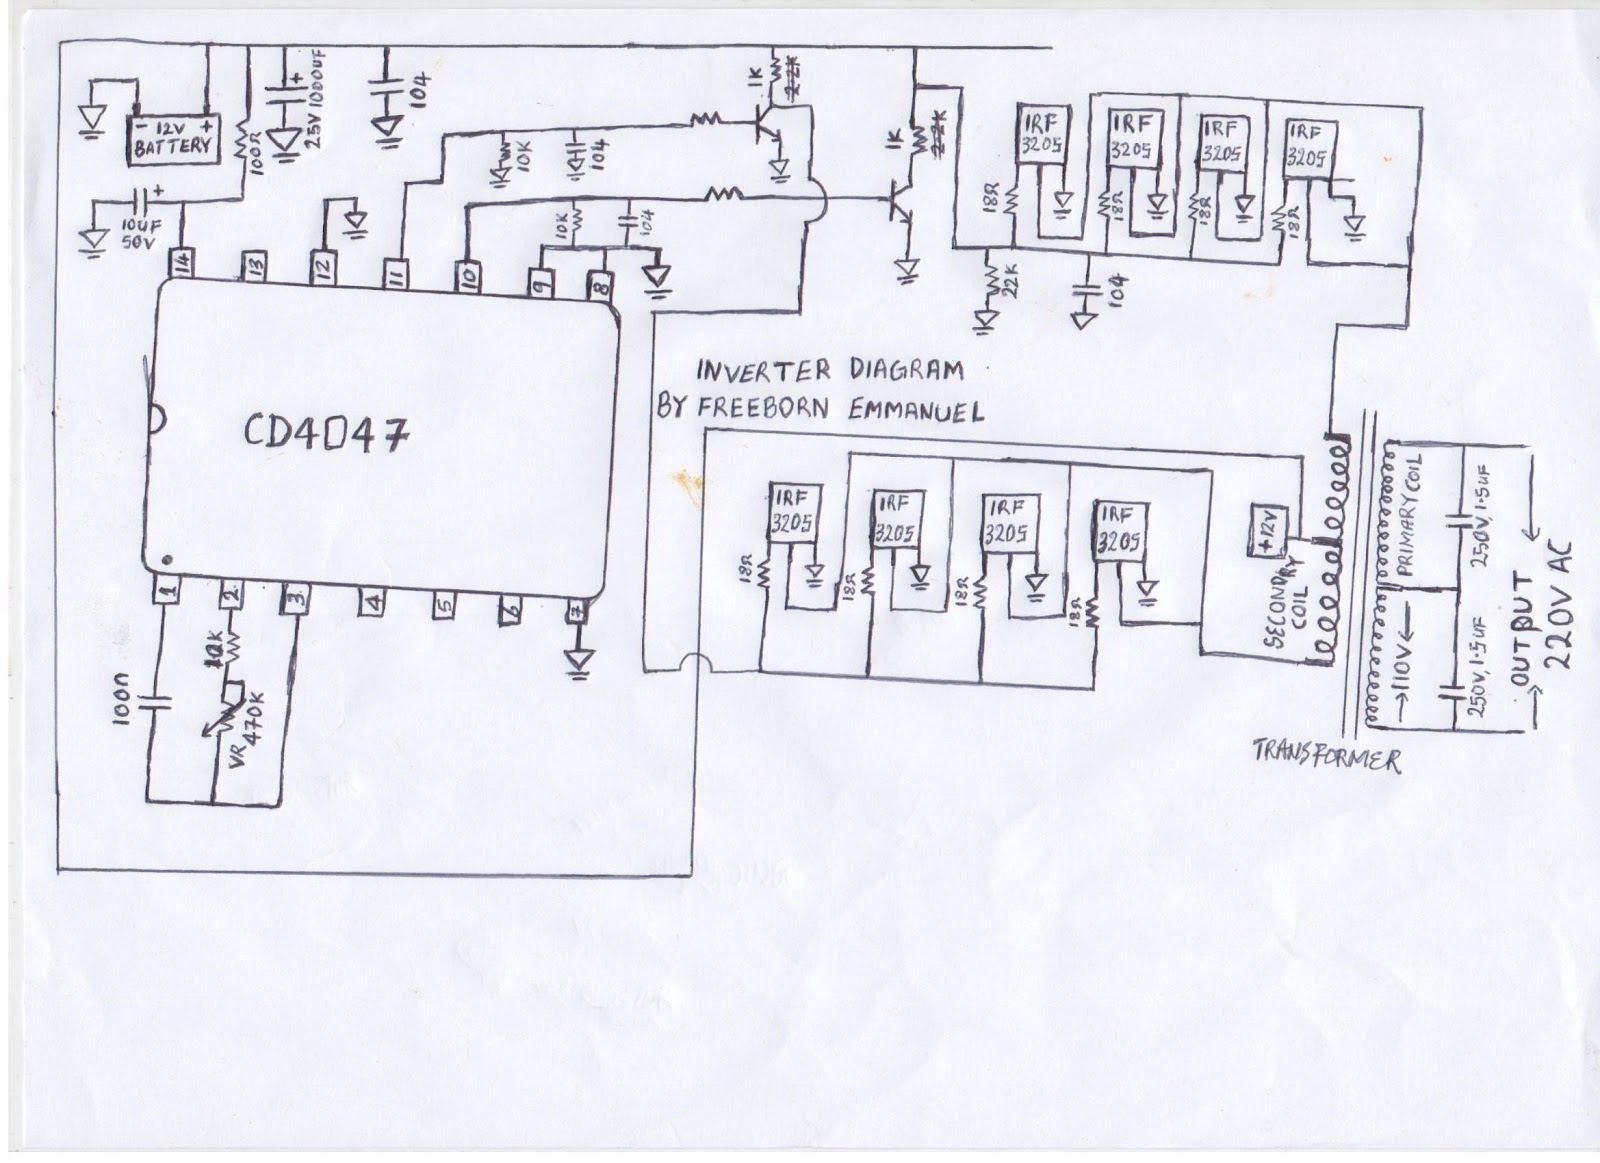 1000 watts inverter circuit diagram